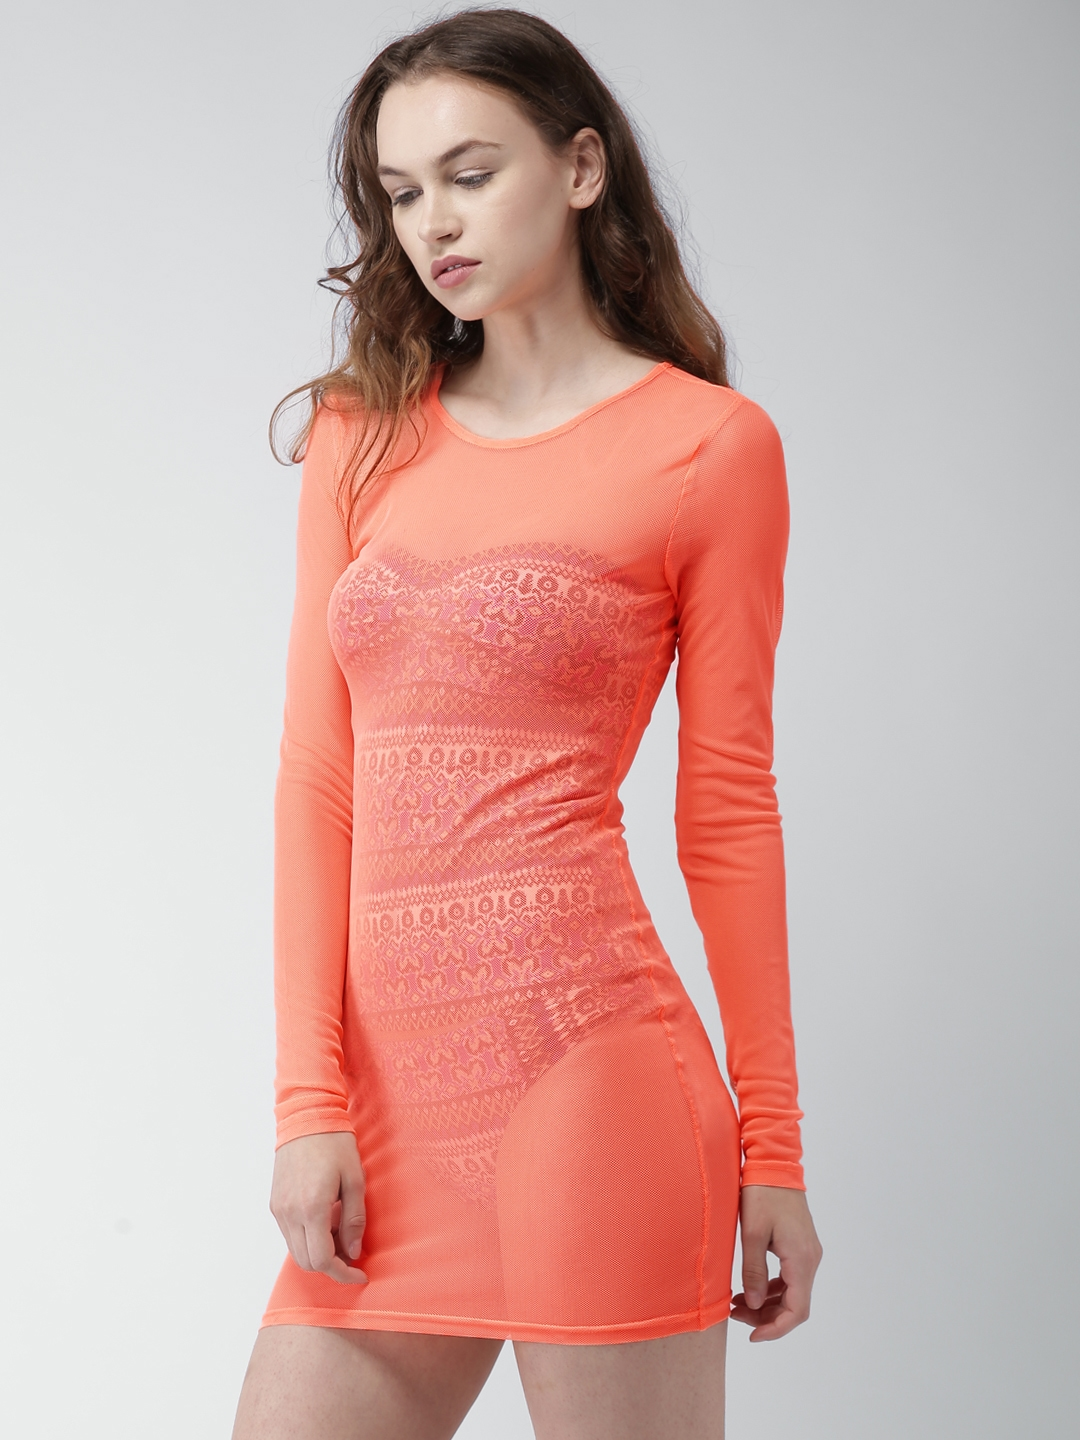 9972658f86 Buy FOREVER 21 Neon Coral Cover Up Net Dress 229180 - Swimwear for ...